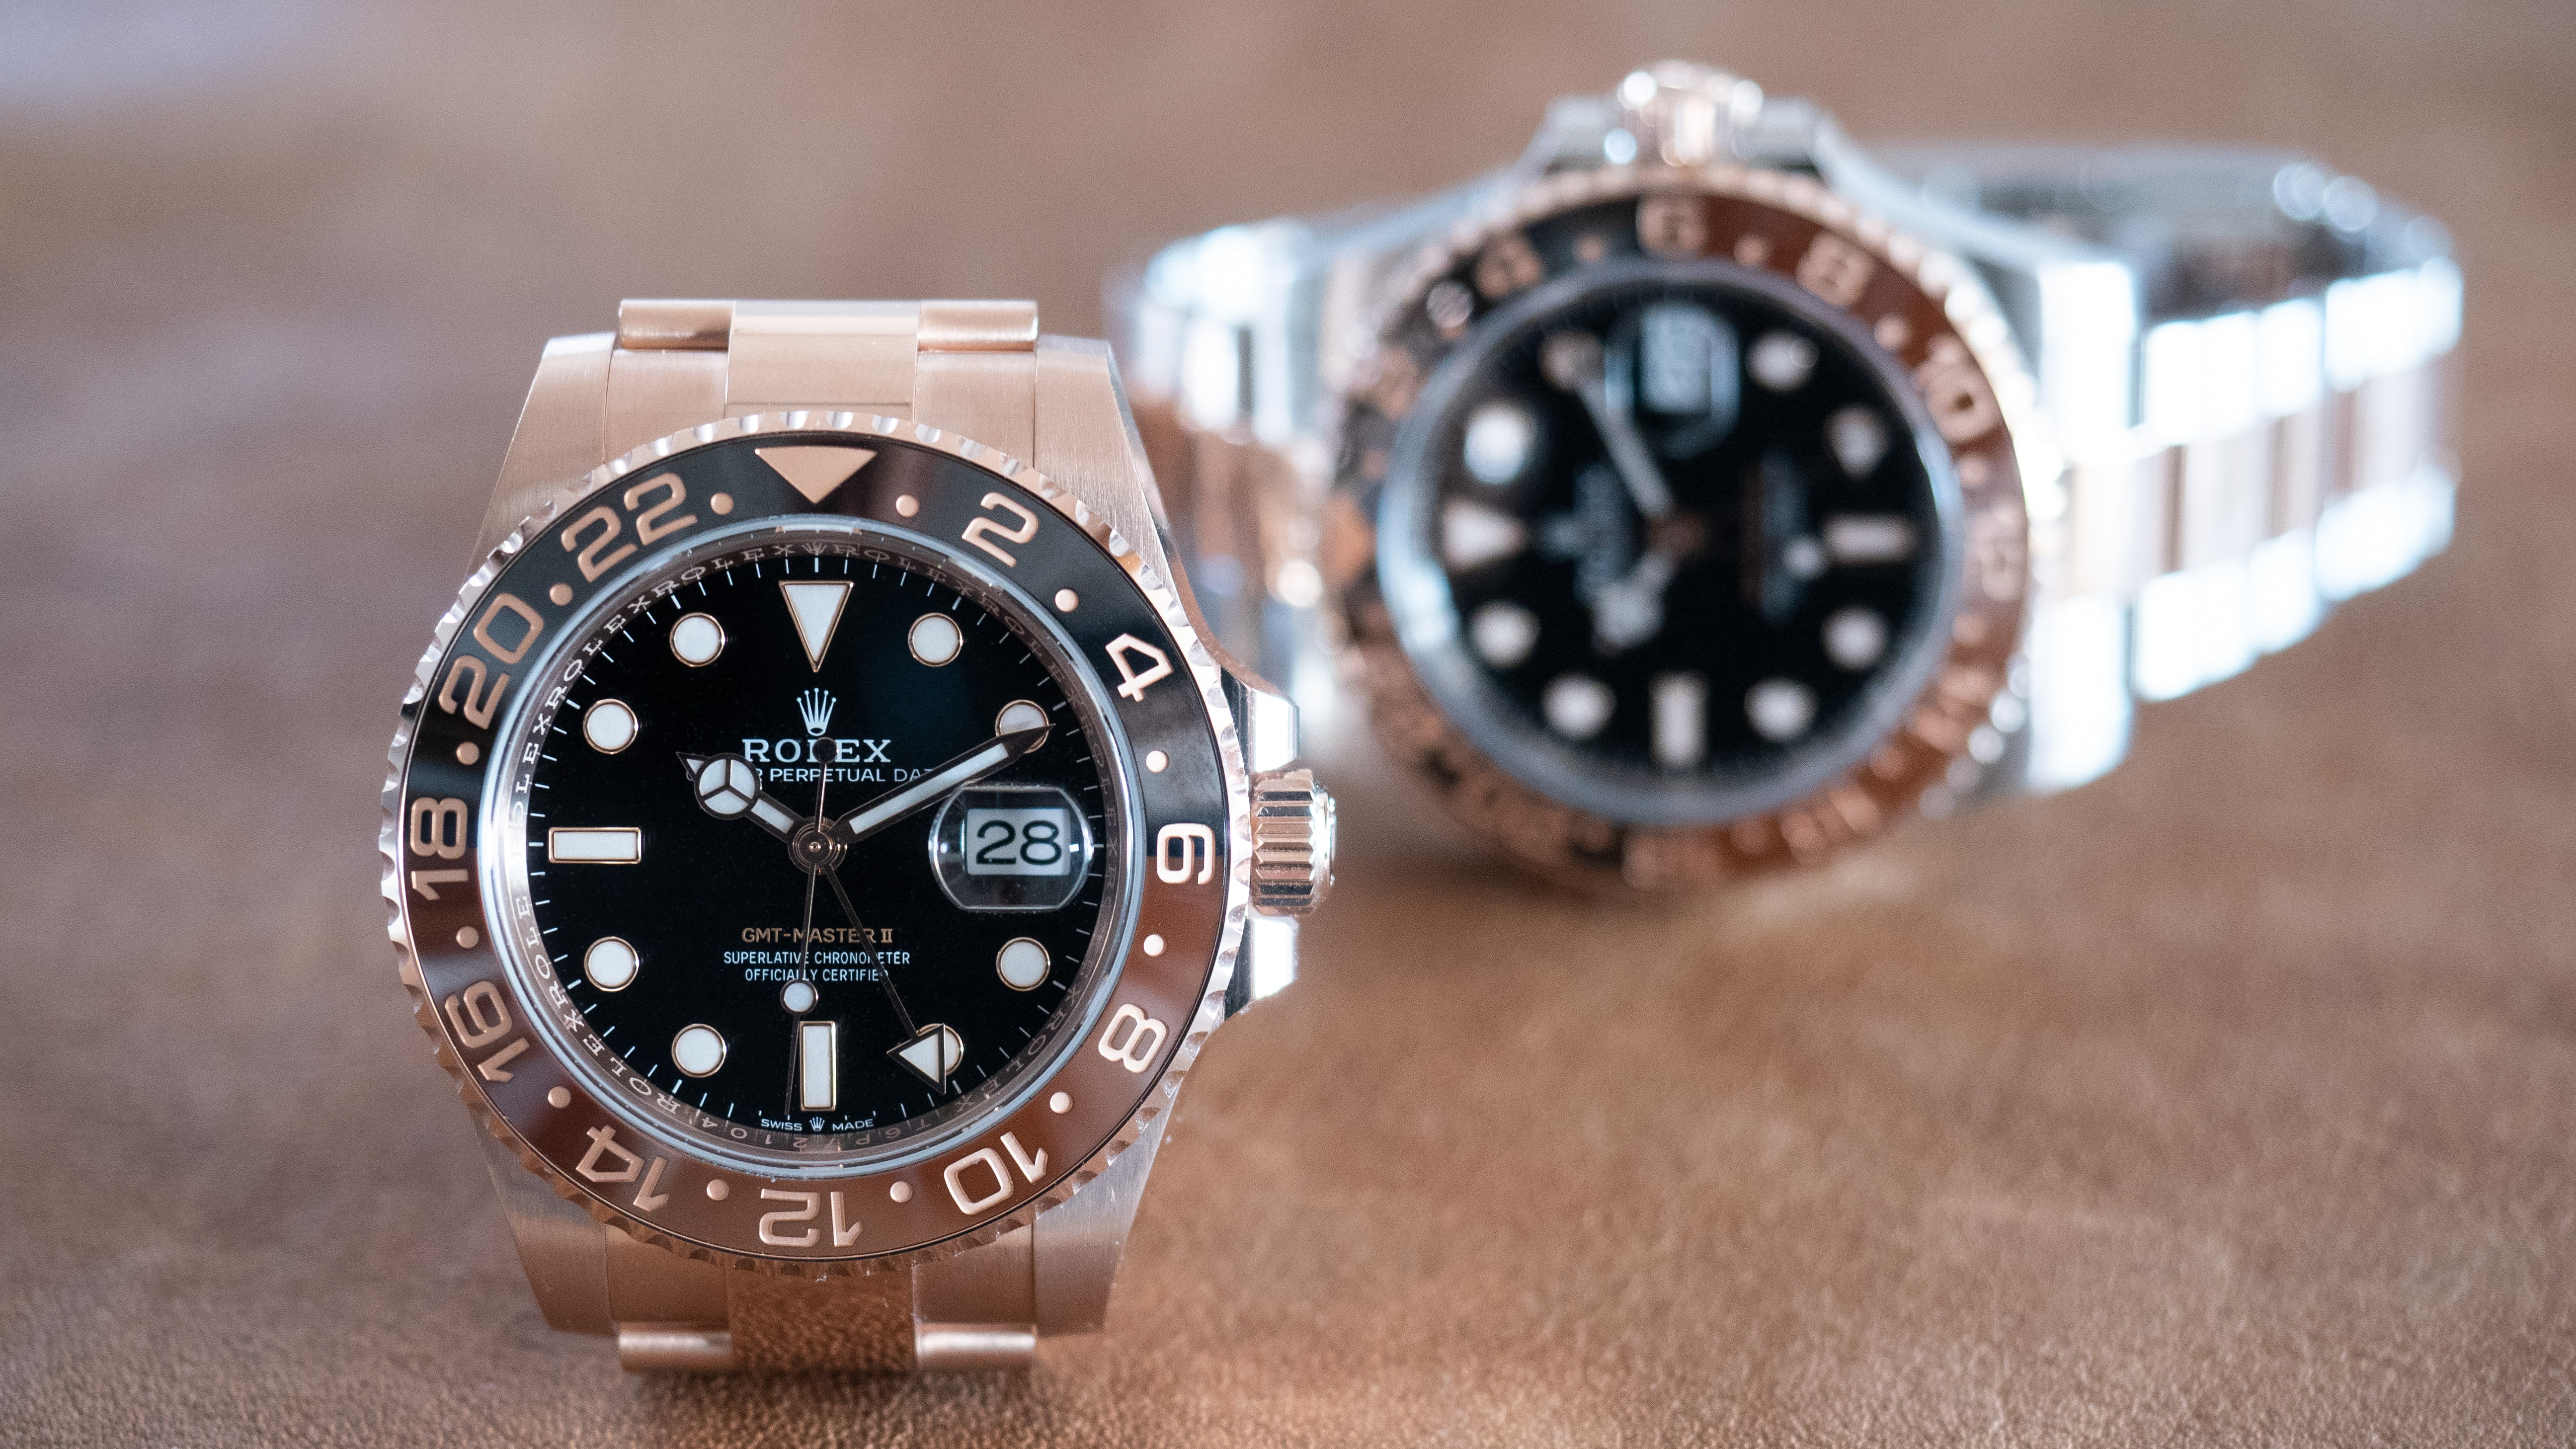 bc67ceb423a2 Hands-On The Rolex Everose GMT Master II Vs. The GMT Master II In  Oystersteel And Everose Gold